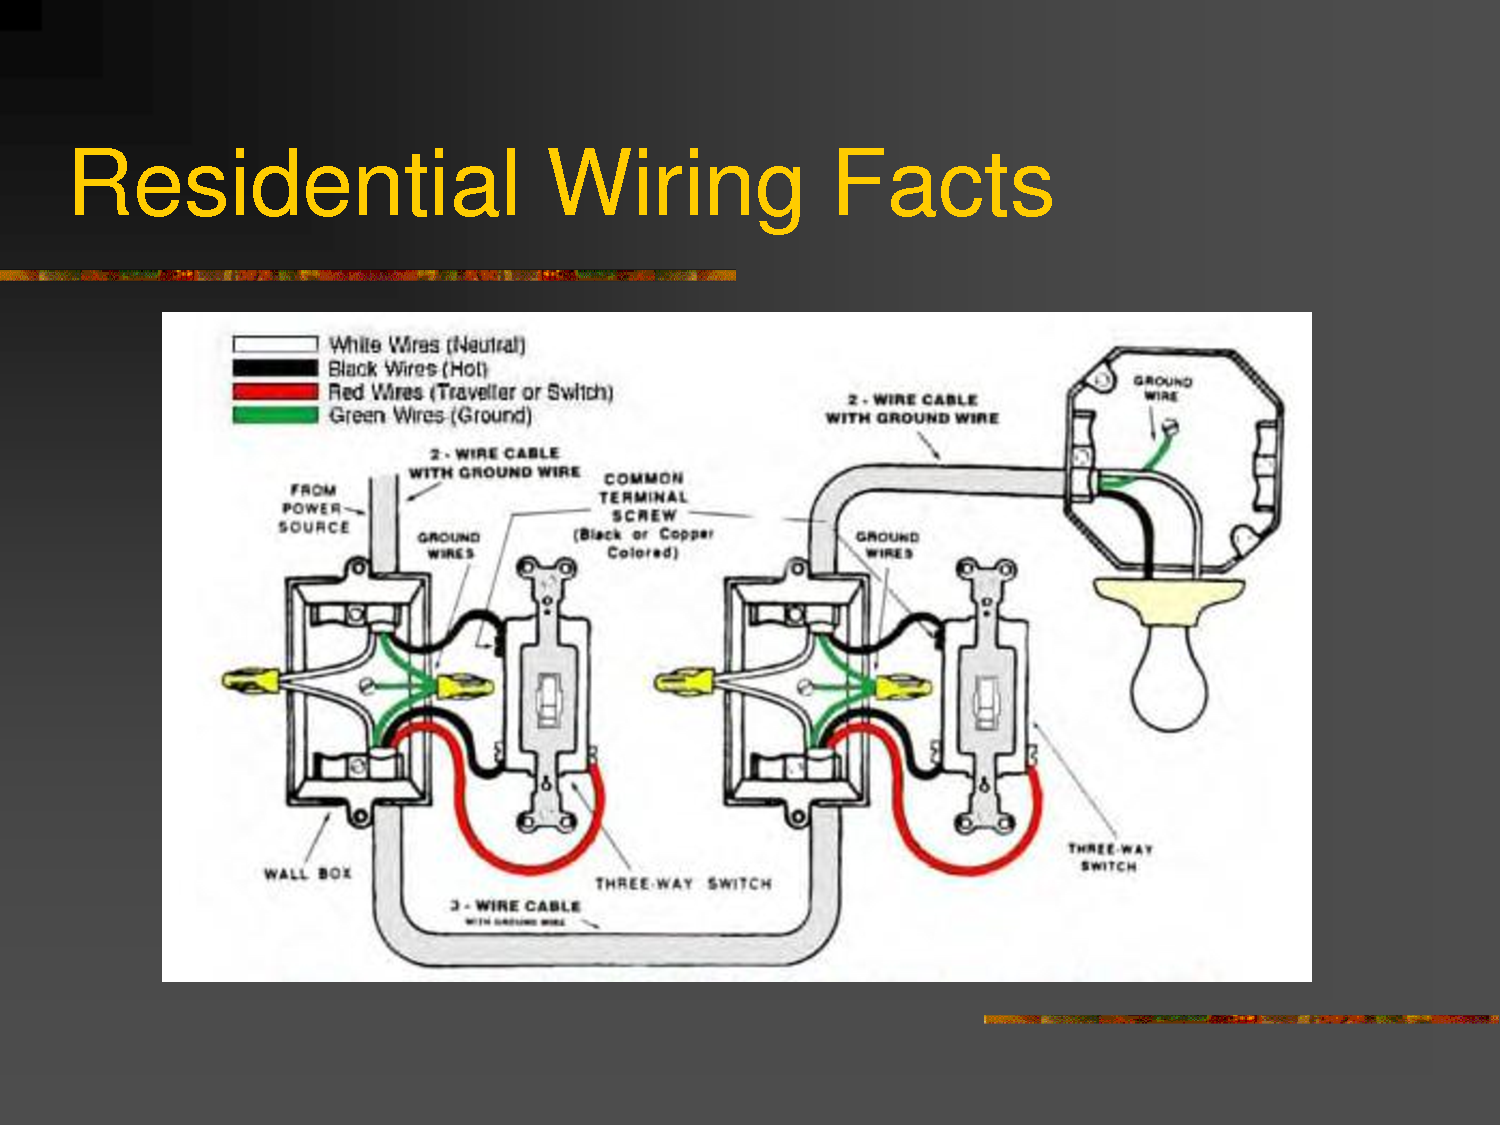 Way Wiring Diagrams For Houses on 2 way switches diagram, 2 way wire, 2 way clutch, 2 way solenoid, 2 way valve, 2 way door, easy 3 way switch diagram, 2 way cabinet, 2 way frame, 2 way shock absorber, 2 way plug, 2 way rocker switch diagram,